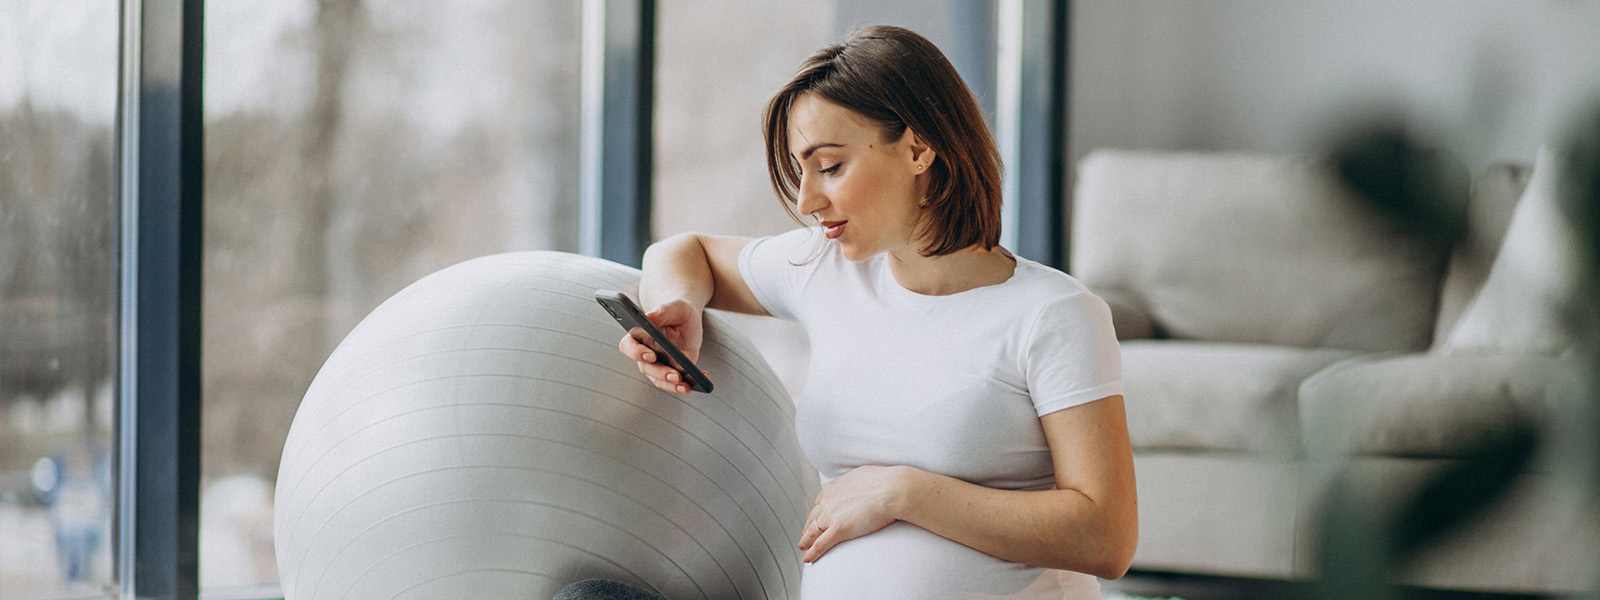 Pregnant Woman On Smartphone For Virtual Physio